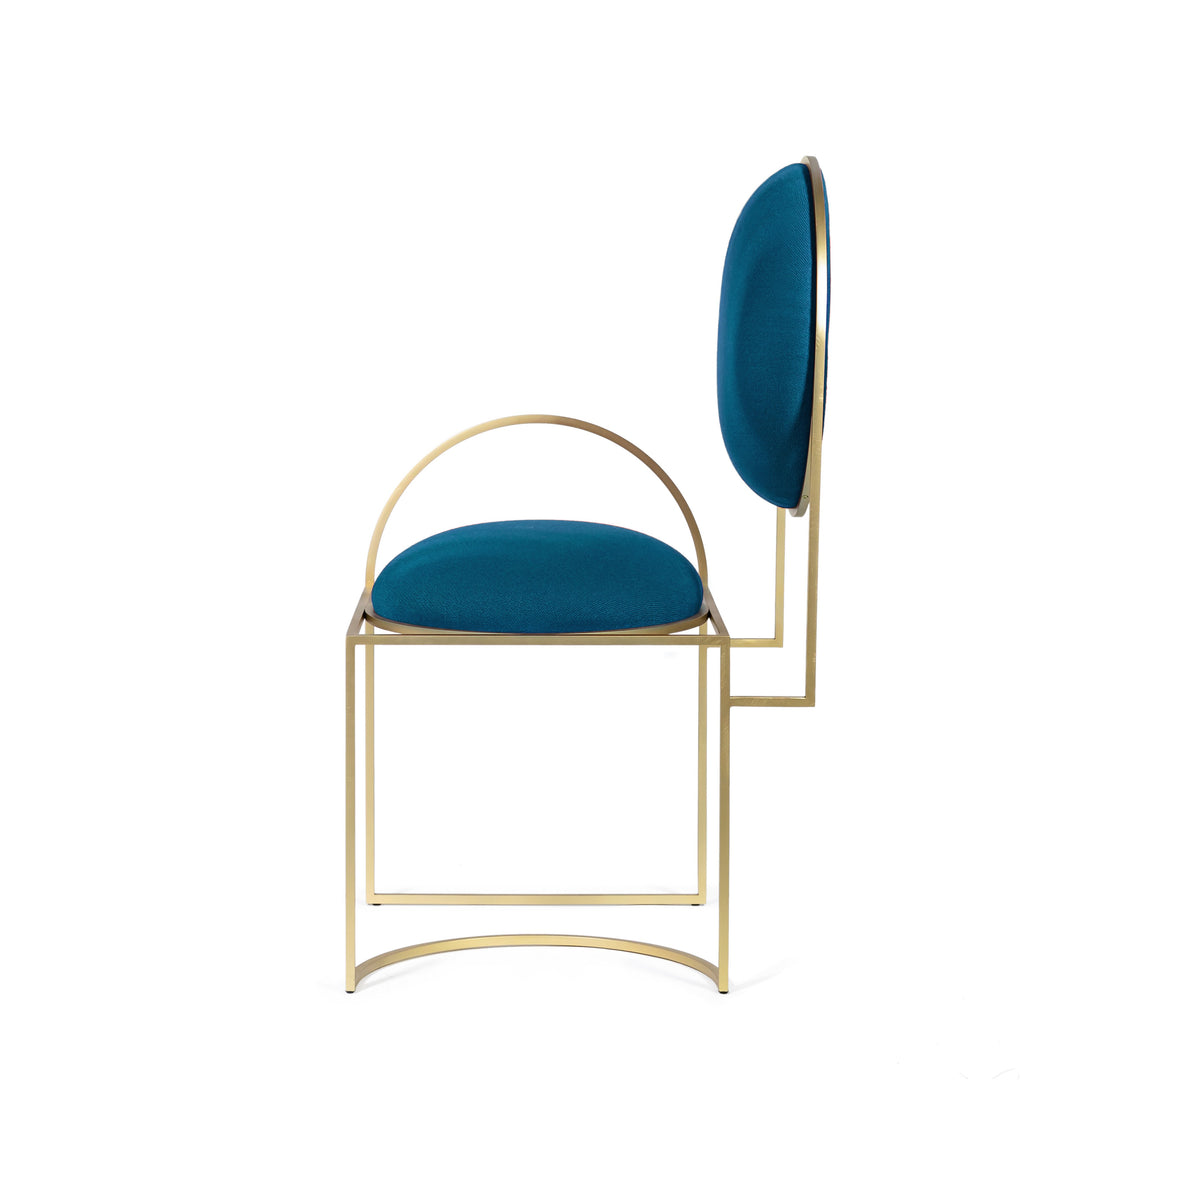 SOLAR CHAIR - PETROL BLUE